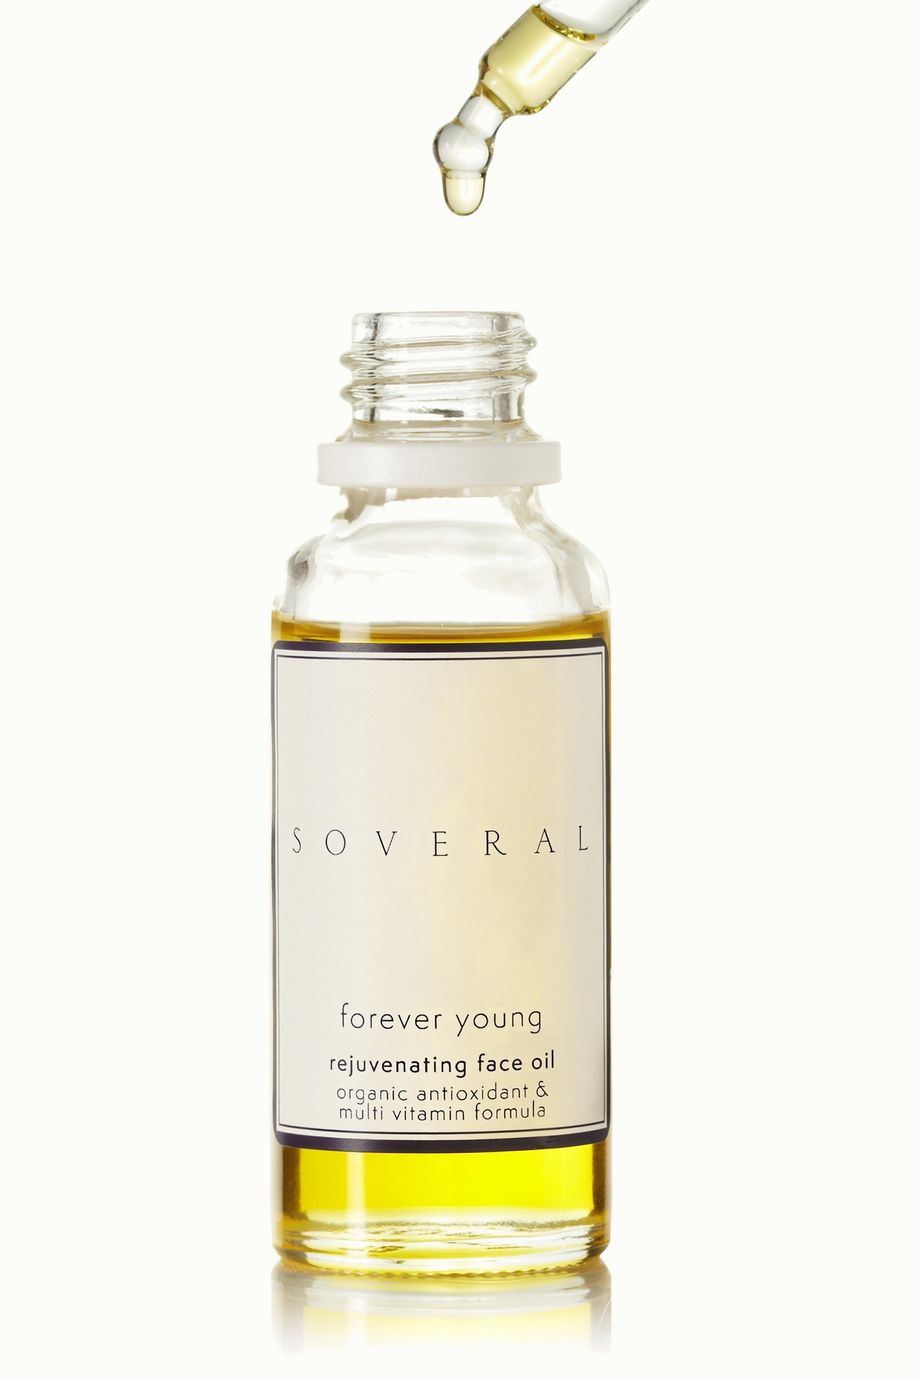 SOVERAL Forever Young Rejuvenating Face Oil, 30 ml – Gesichtsöl